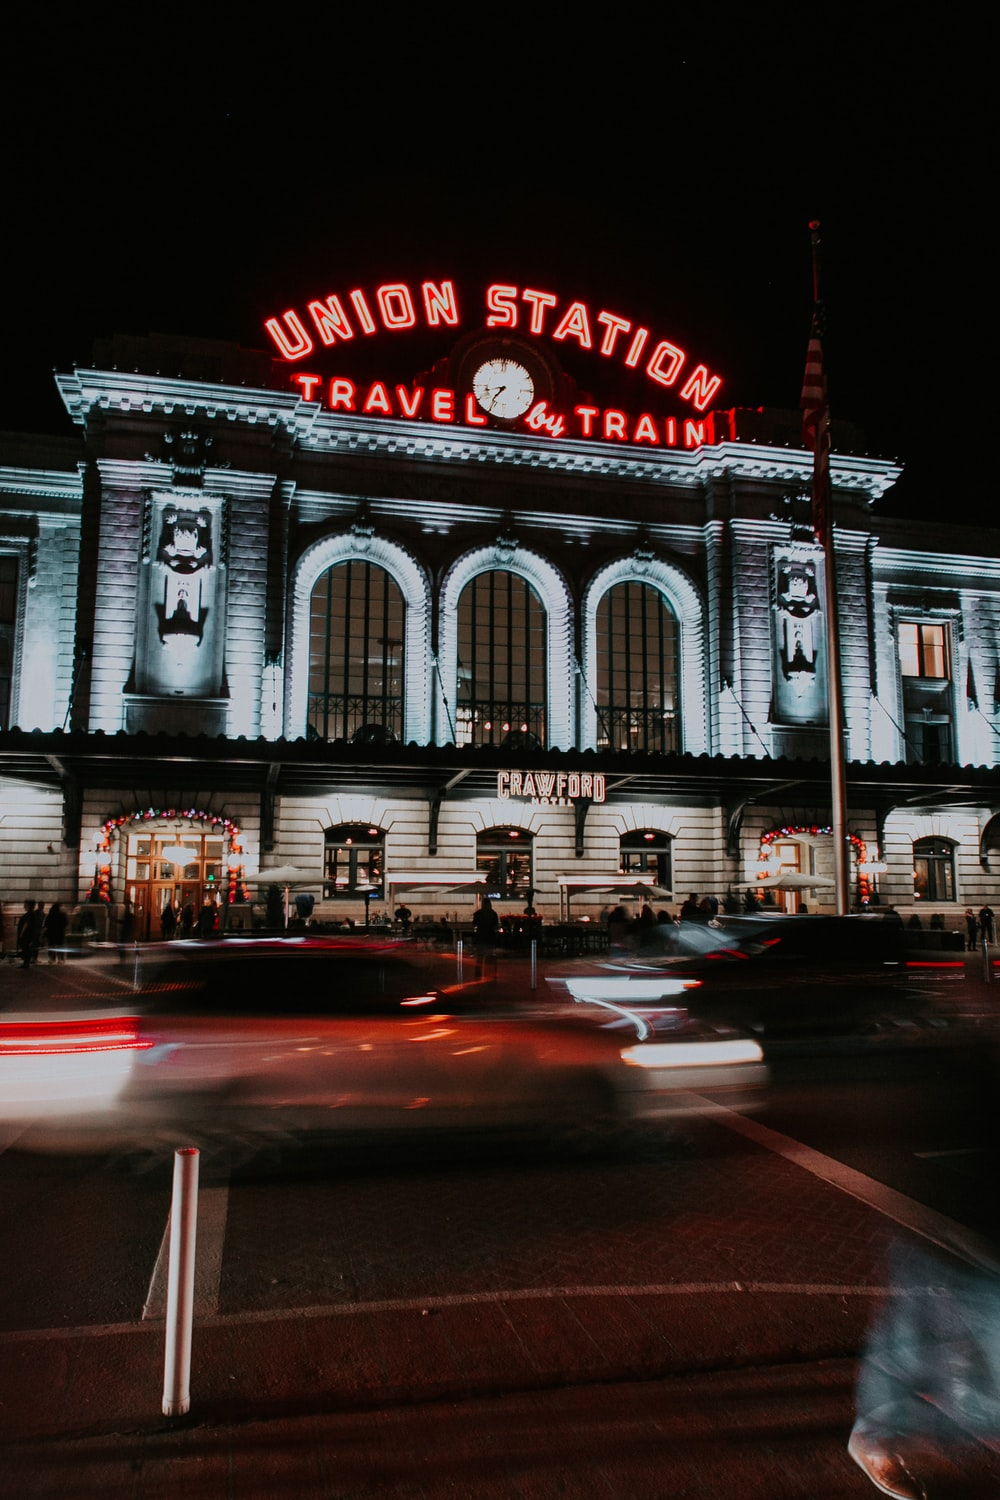 Union Station travel by train building photo at night